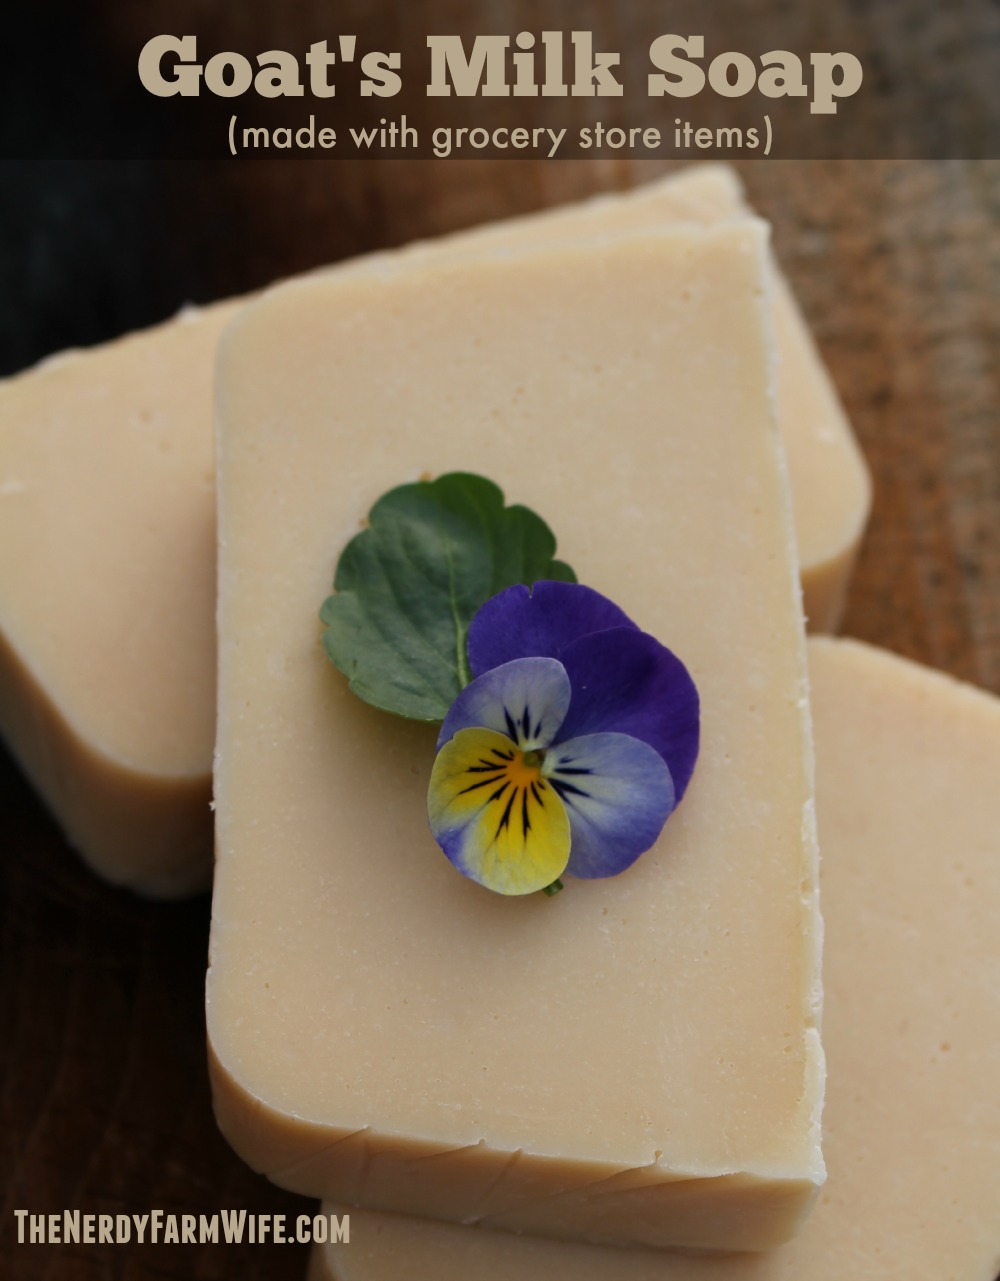 How to Make Goat's Milk Soap Using Oils and Canned Goat's Milk from the Grocery Store